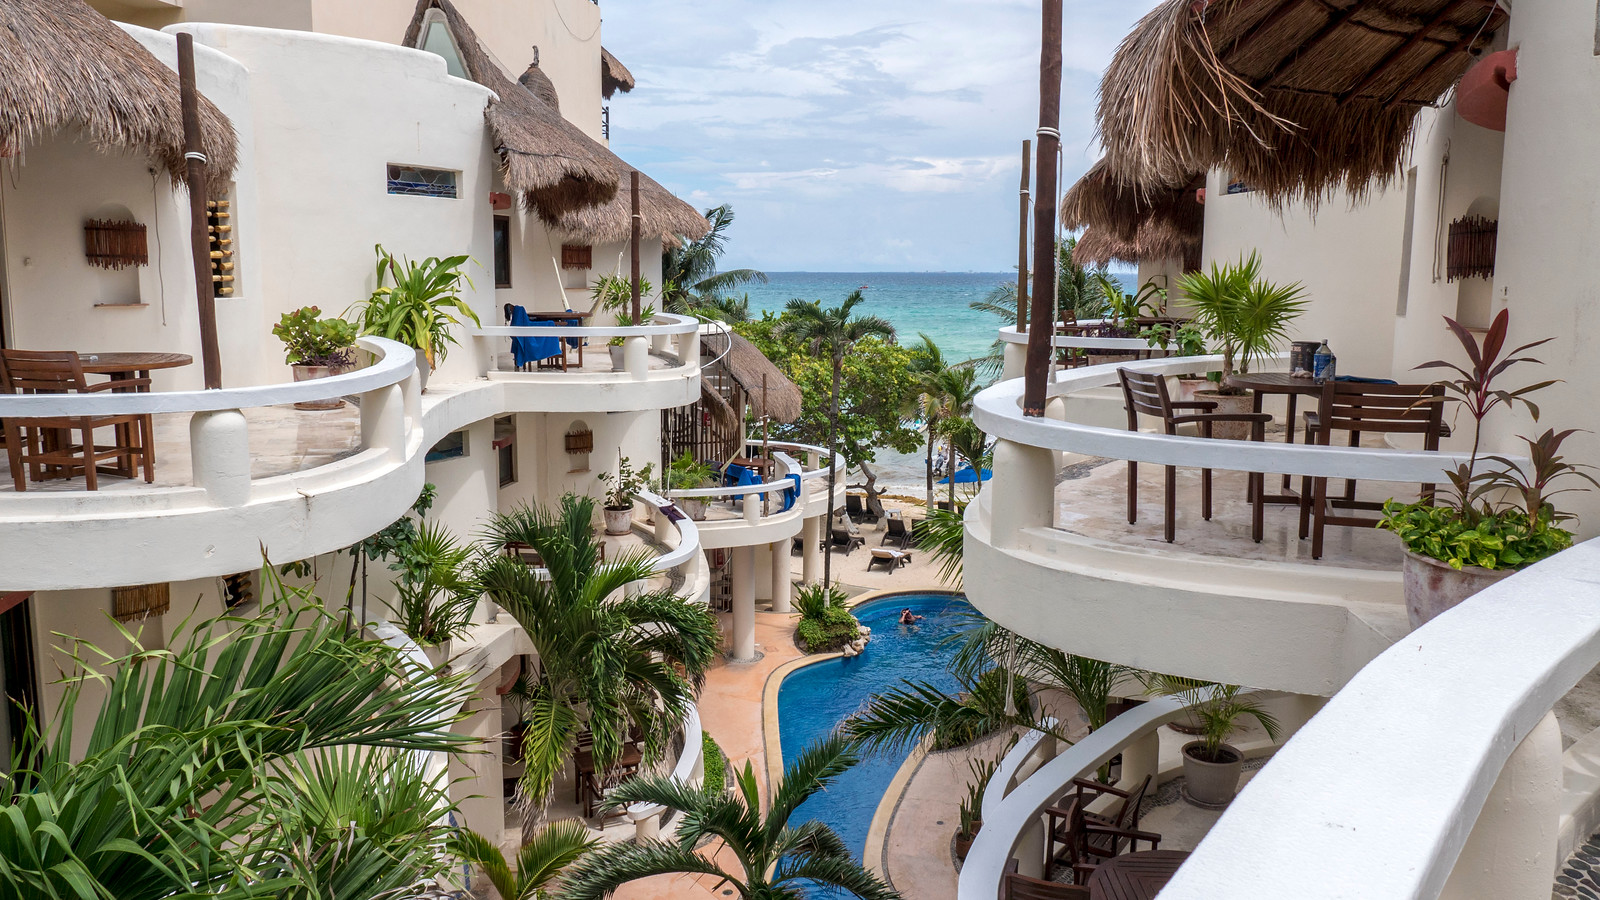 What to Do in Playa Del Carmen - 1 Day Itinerary - Justin